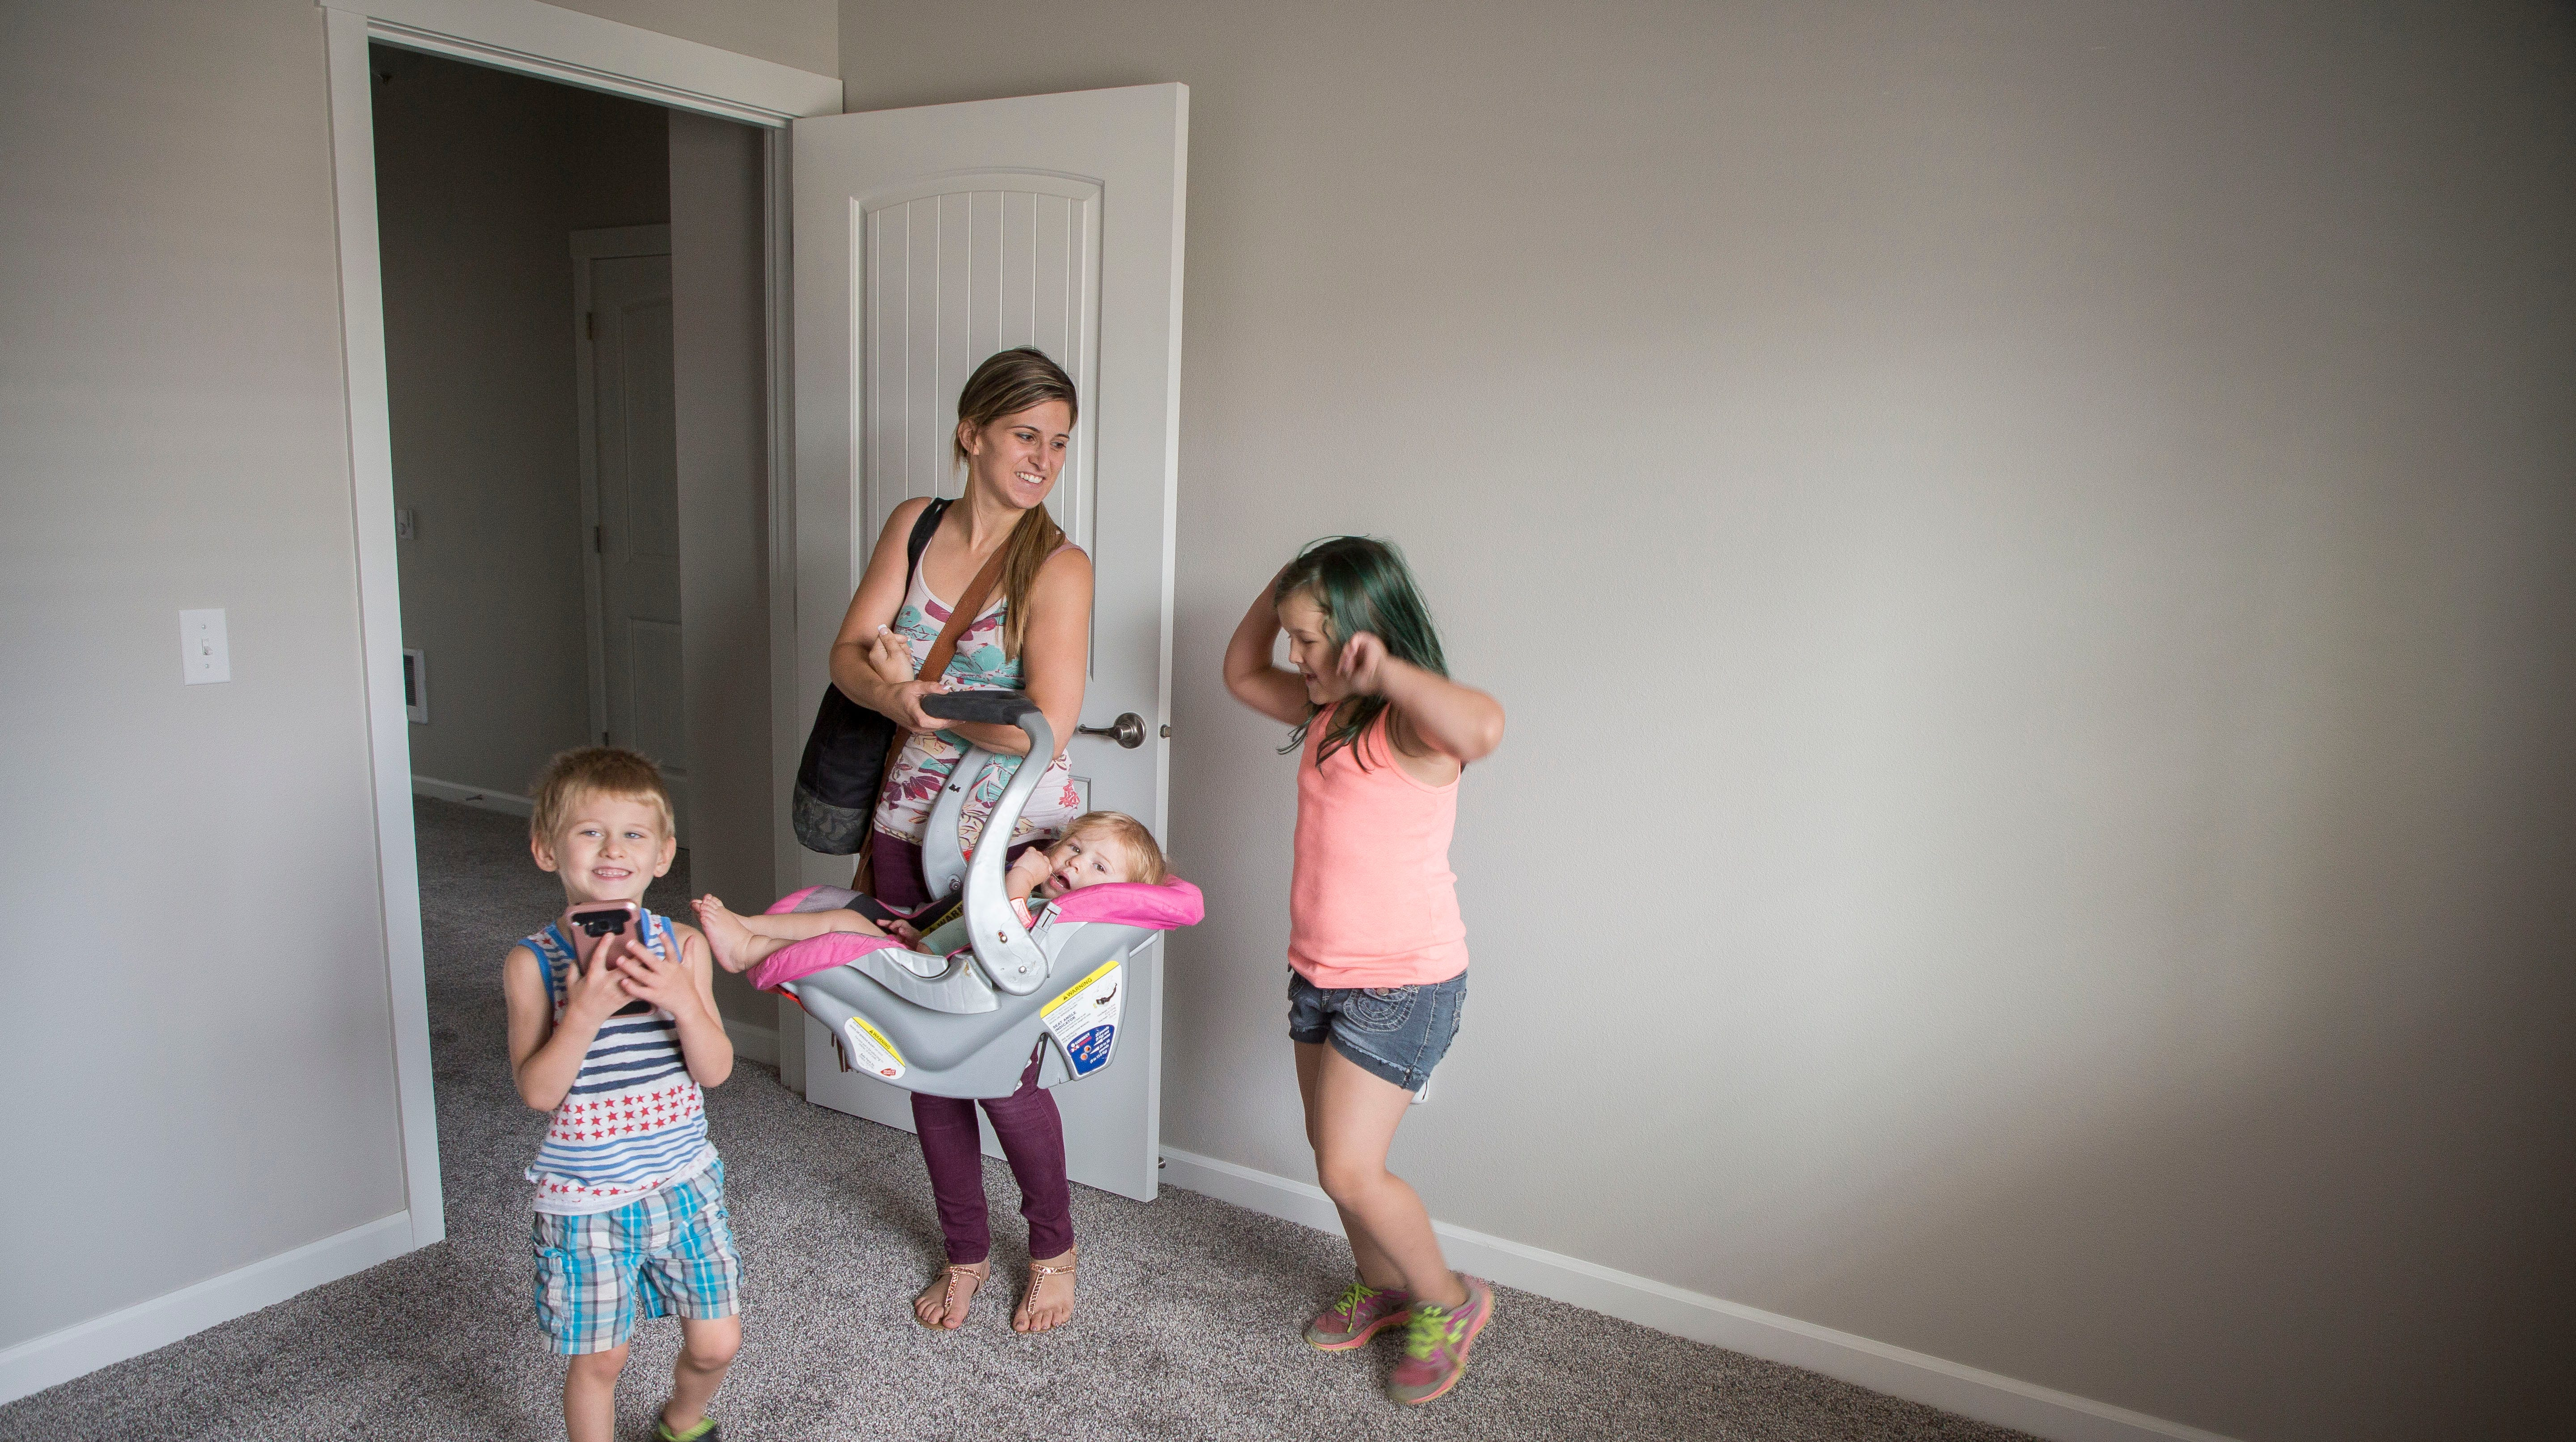 Cornerstone Apartments in north Salem bring hope to low-income families